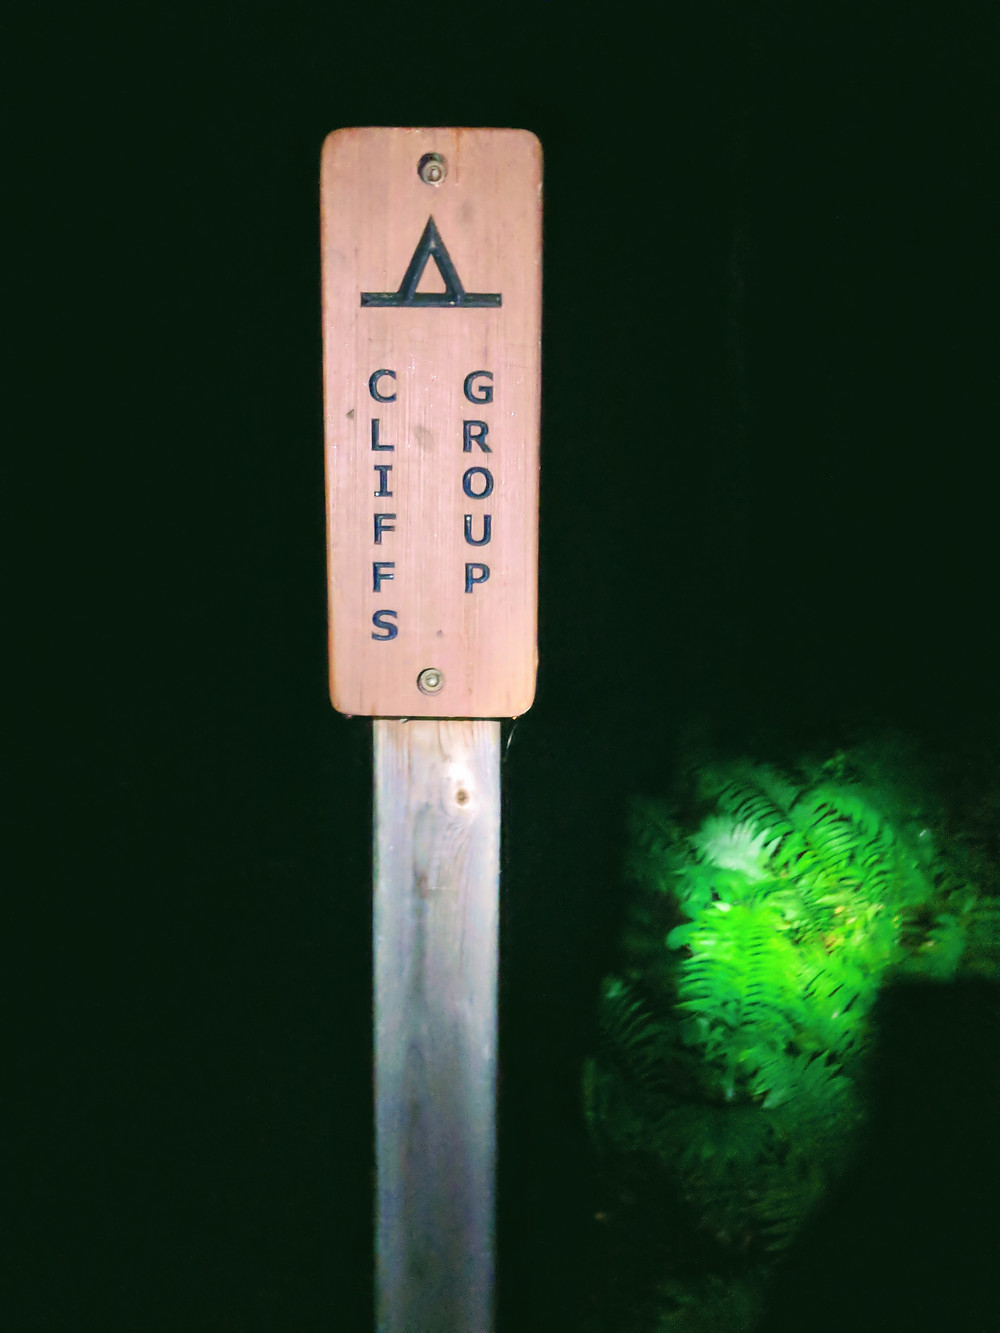 Cliffs Group campsite sign, illuminated by headlamp